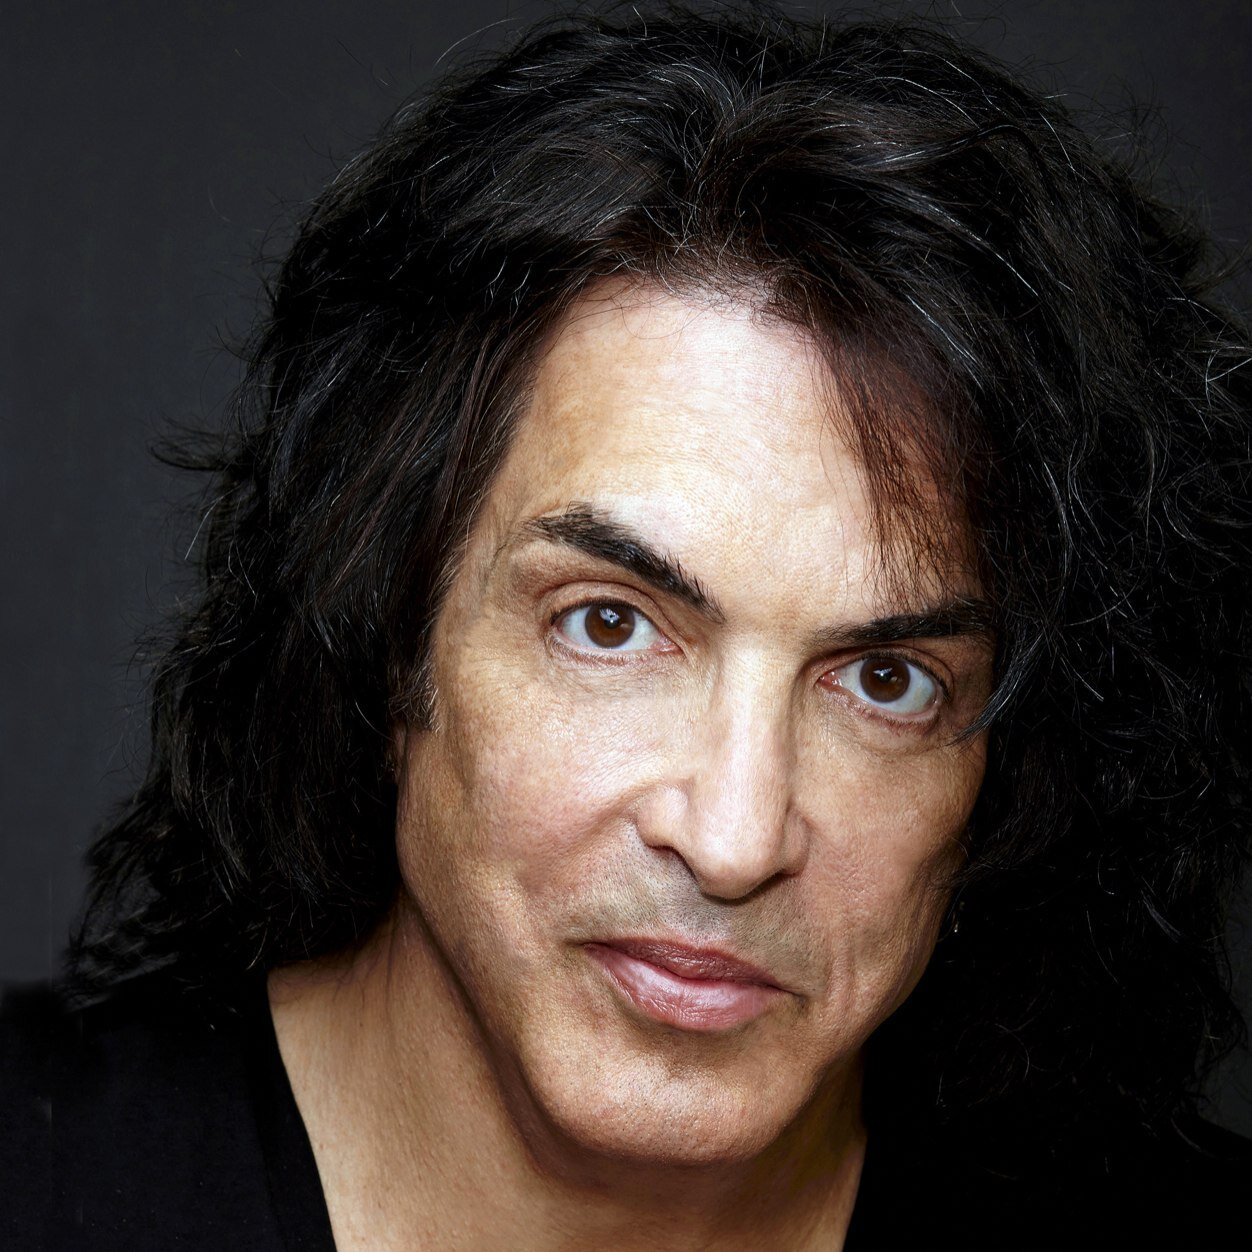 Kiss Band Without Makeup: Paul Stanley (@PaulStanleyLive)